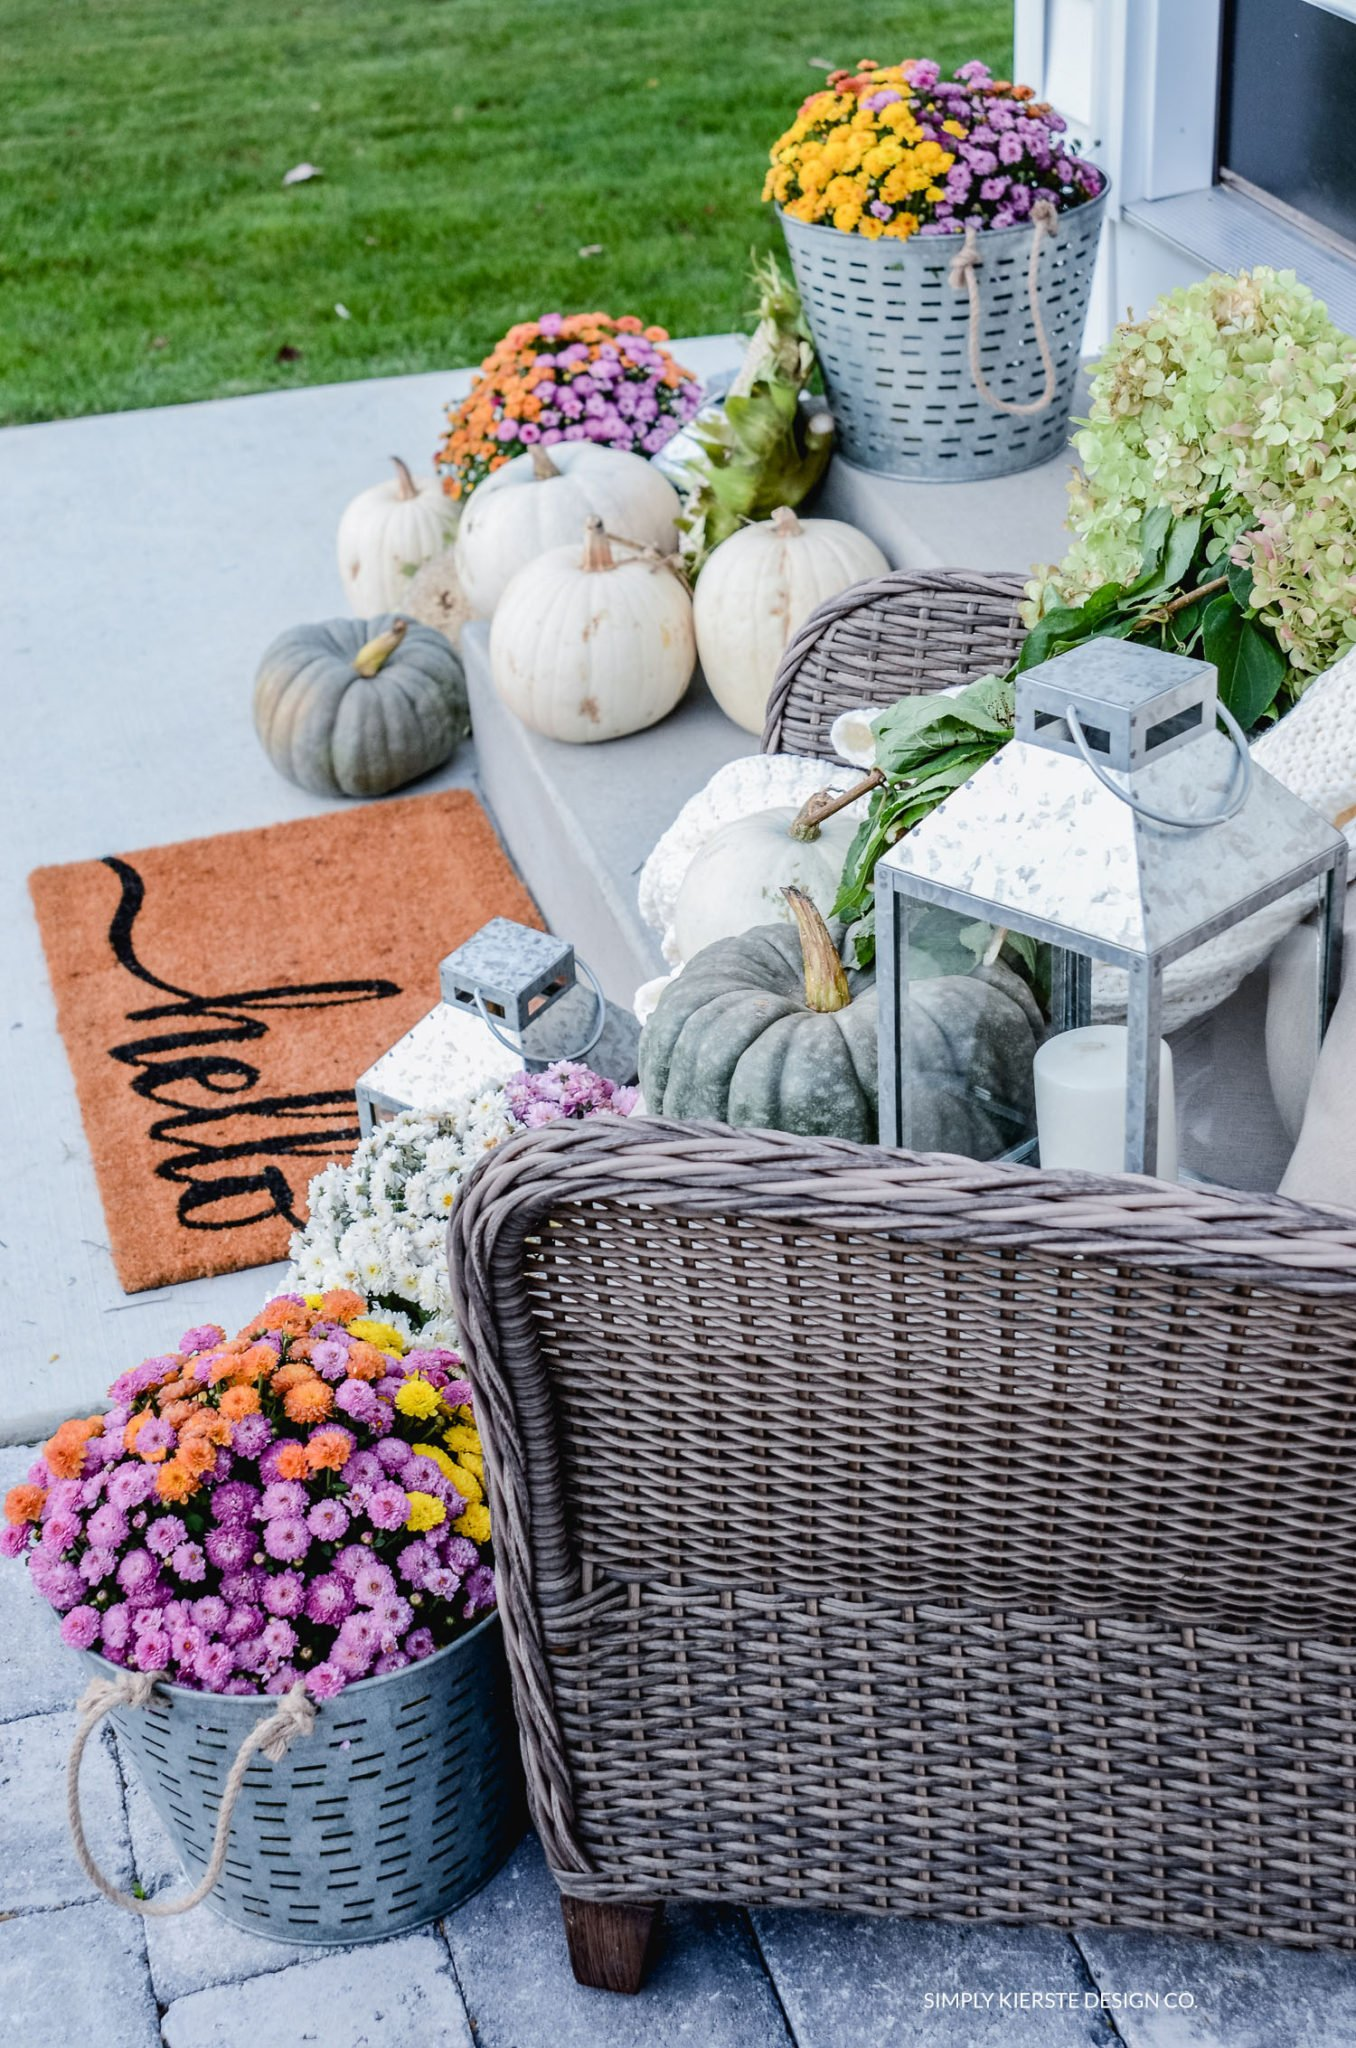 Simple Fall Porch | Better Homes & Gardens | simplykierste.com